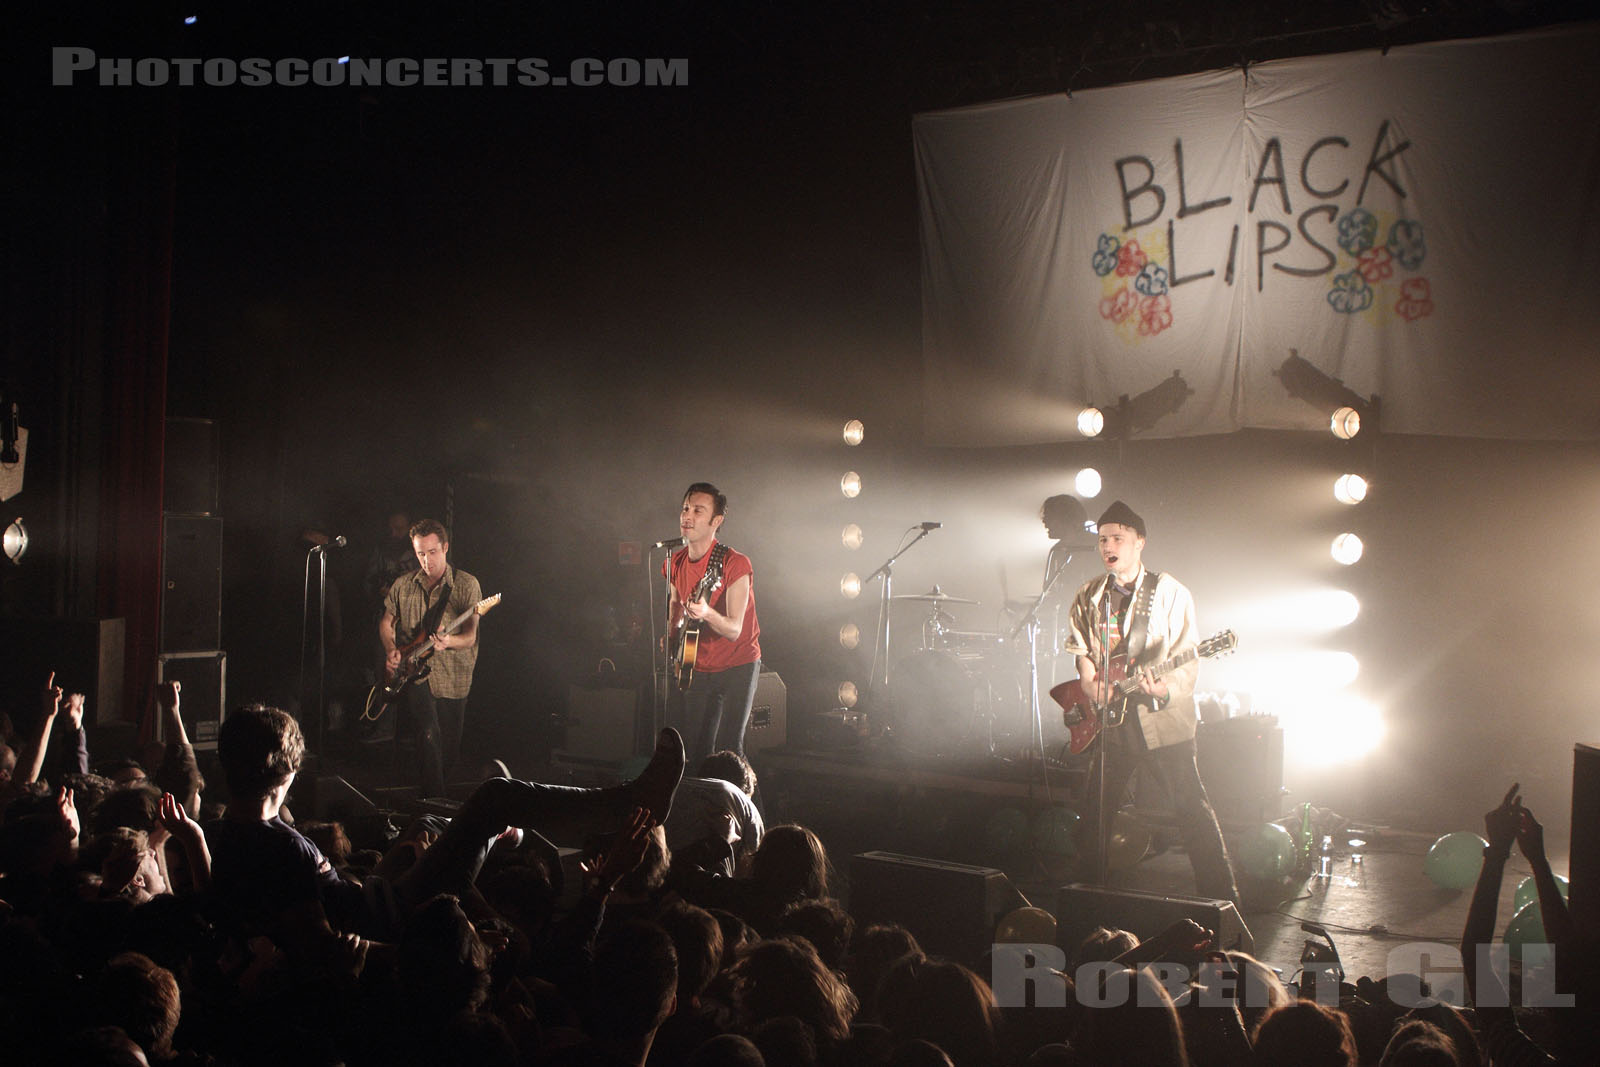 BLACK LIPS - 2014-10-23 - PARIS - La Cigale